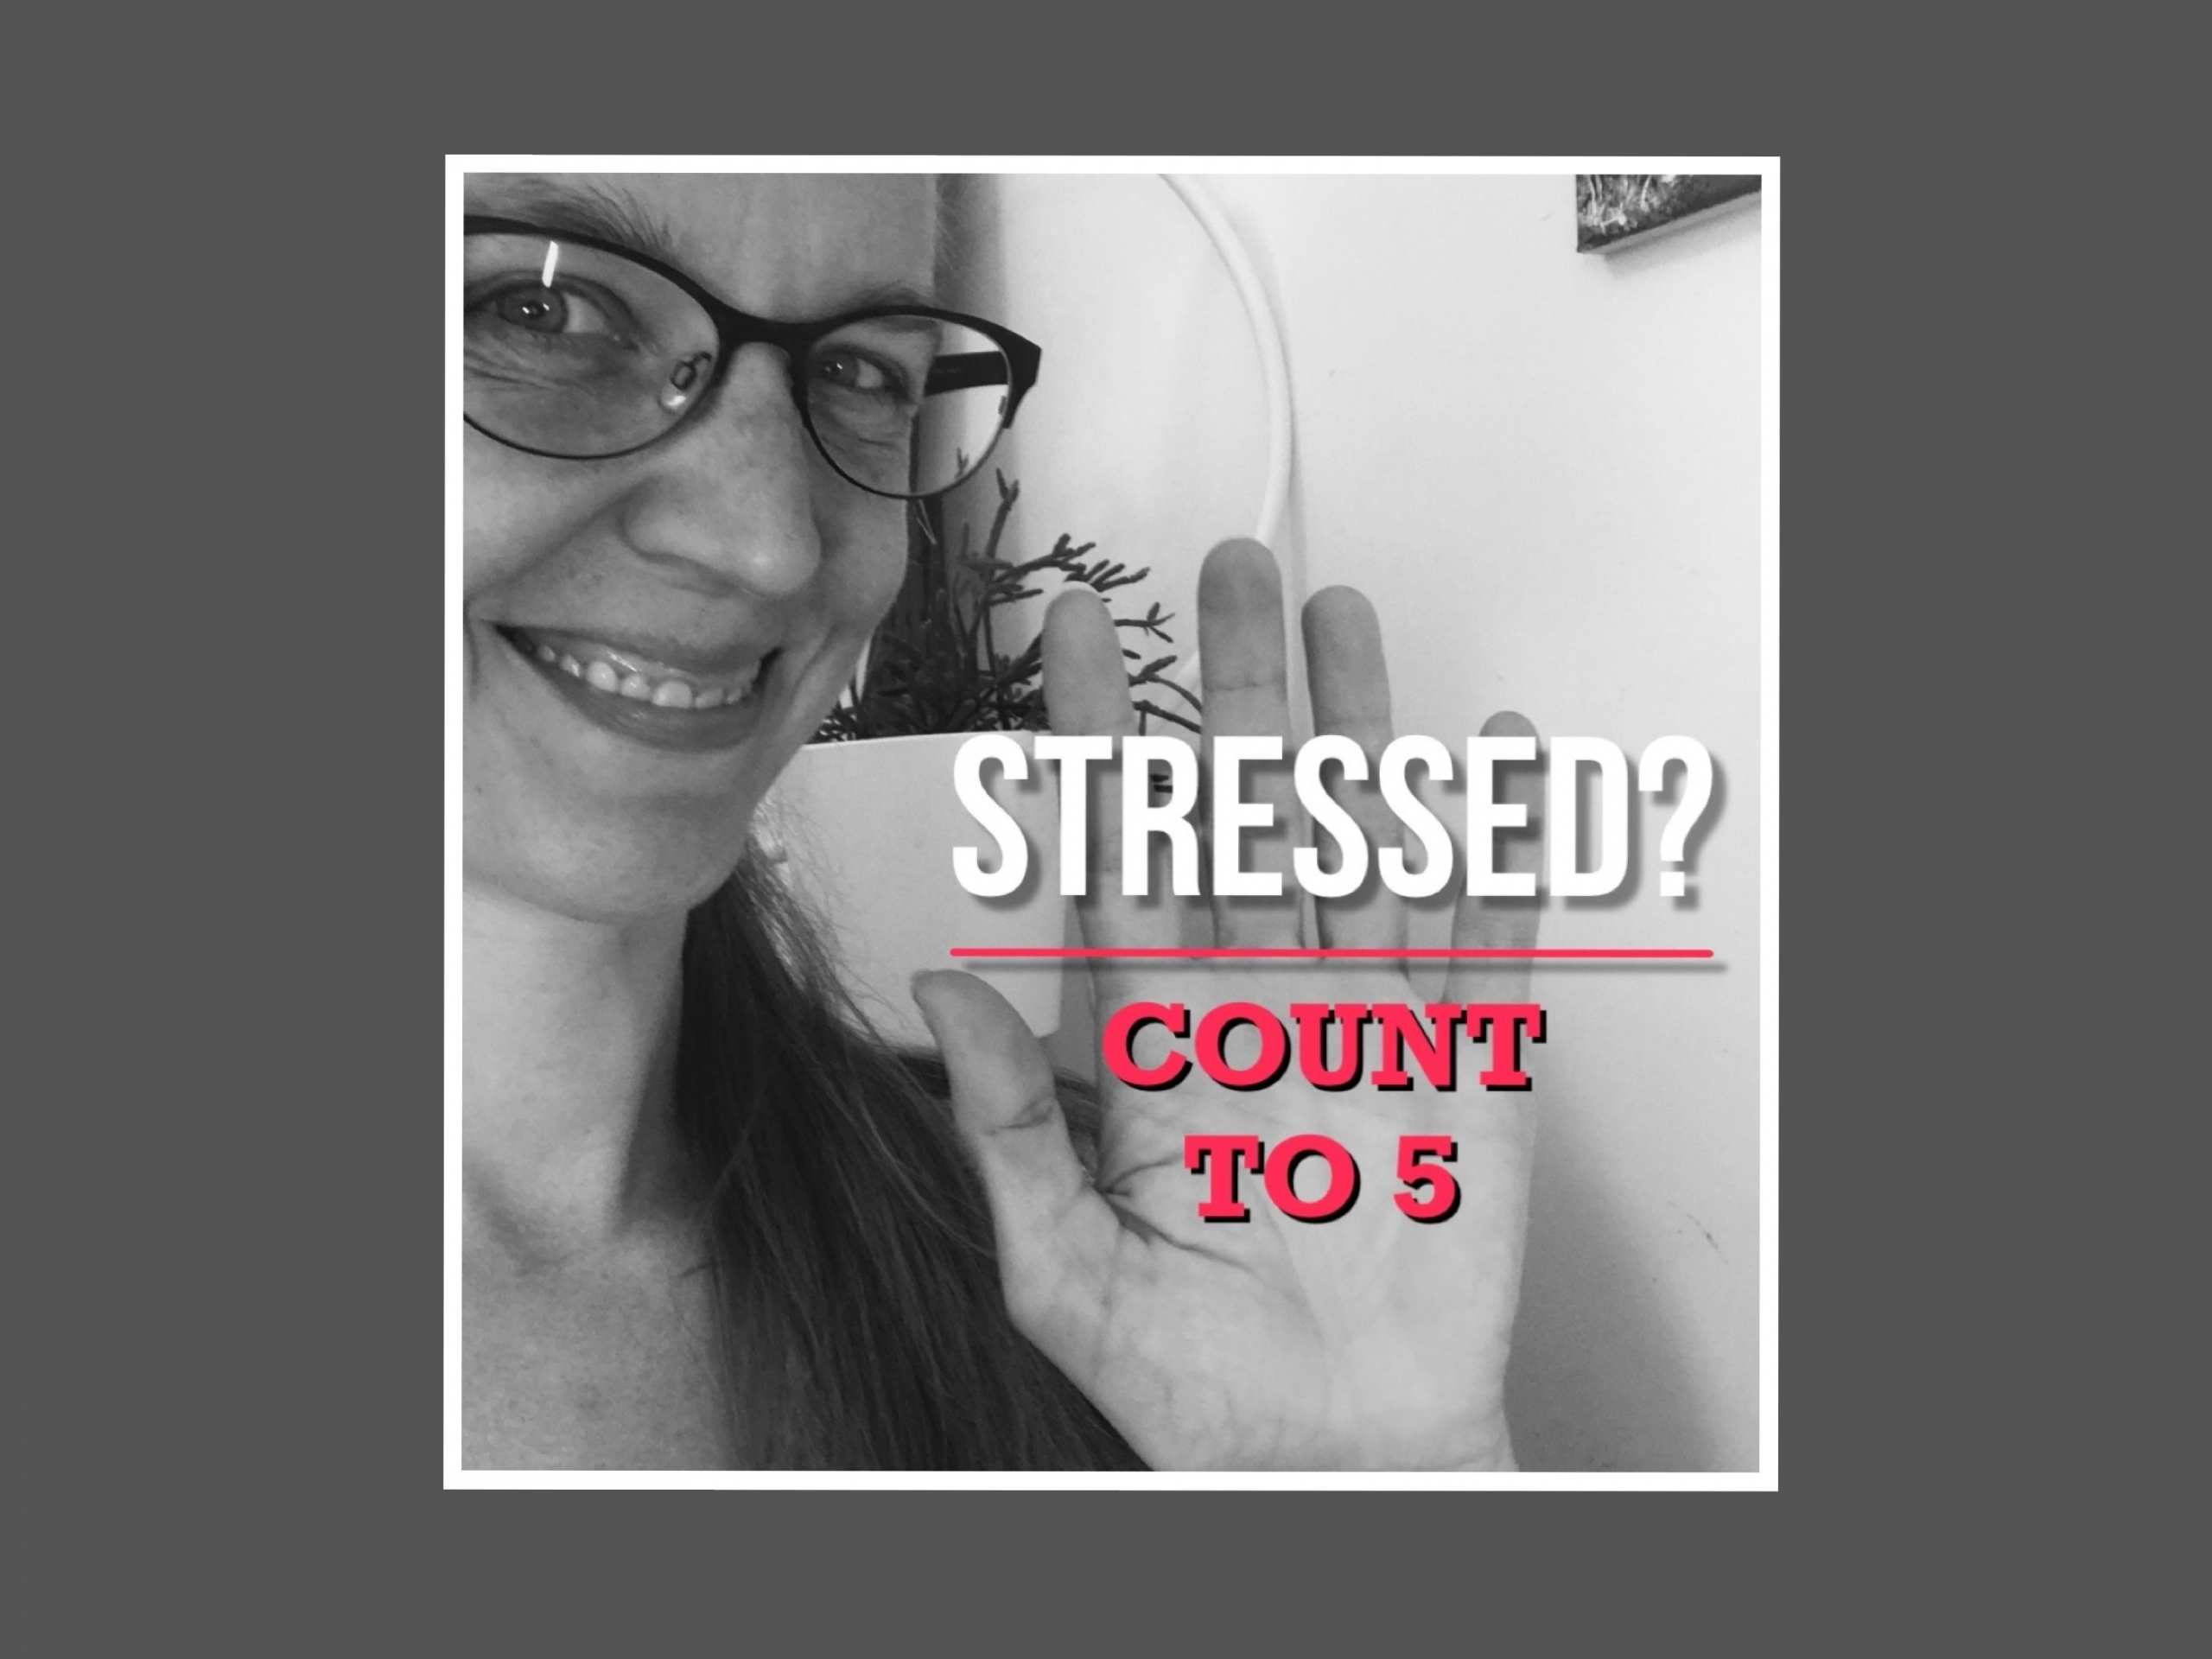 Count to 5 When You Feel Stressed